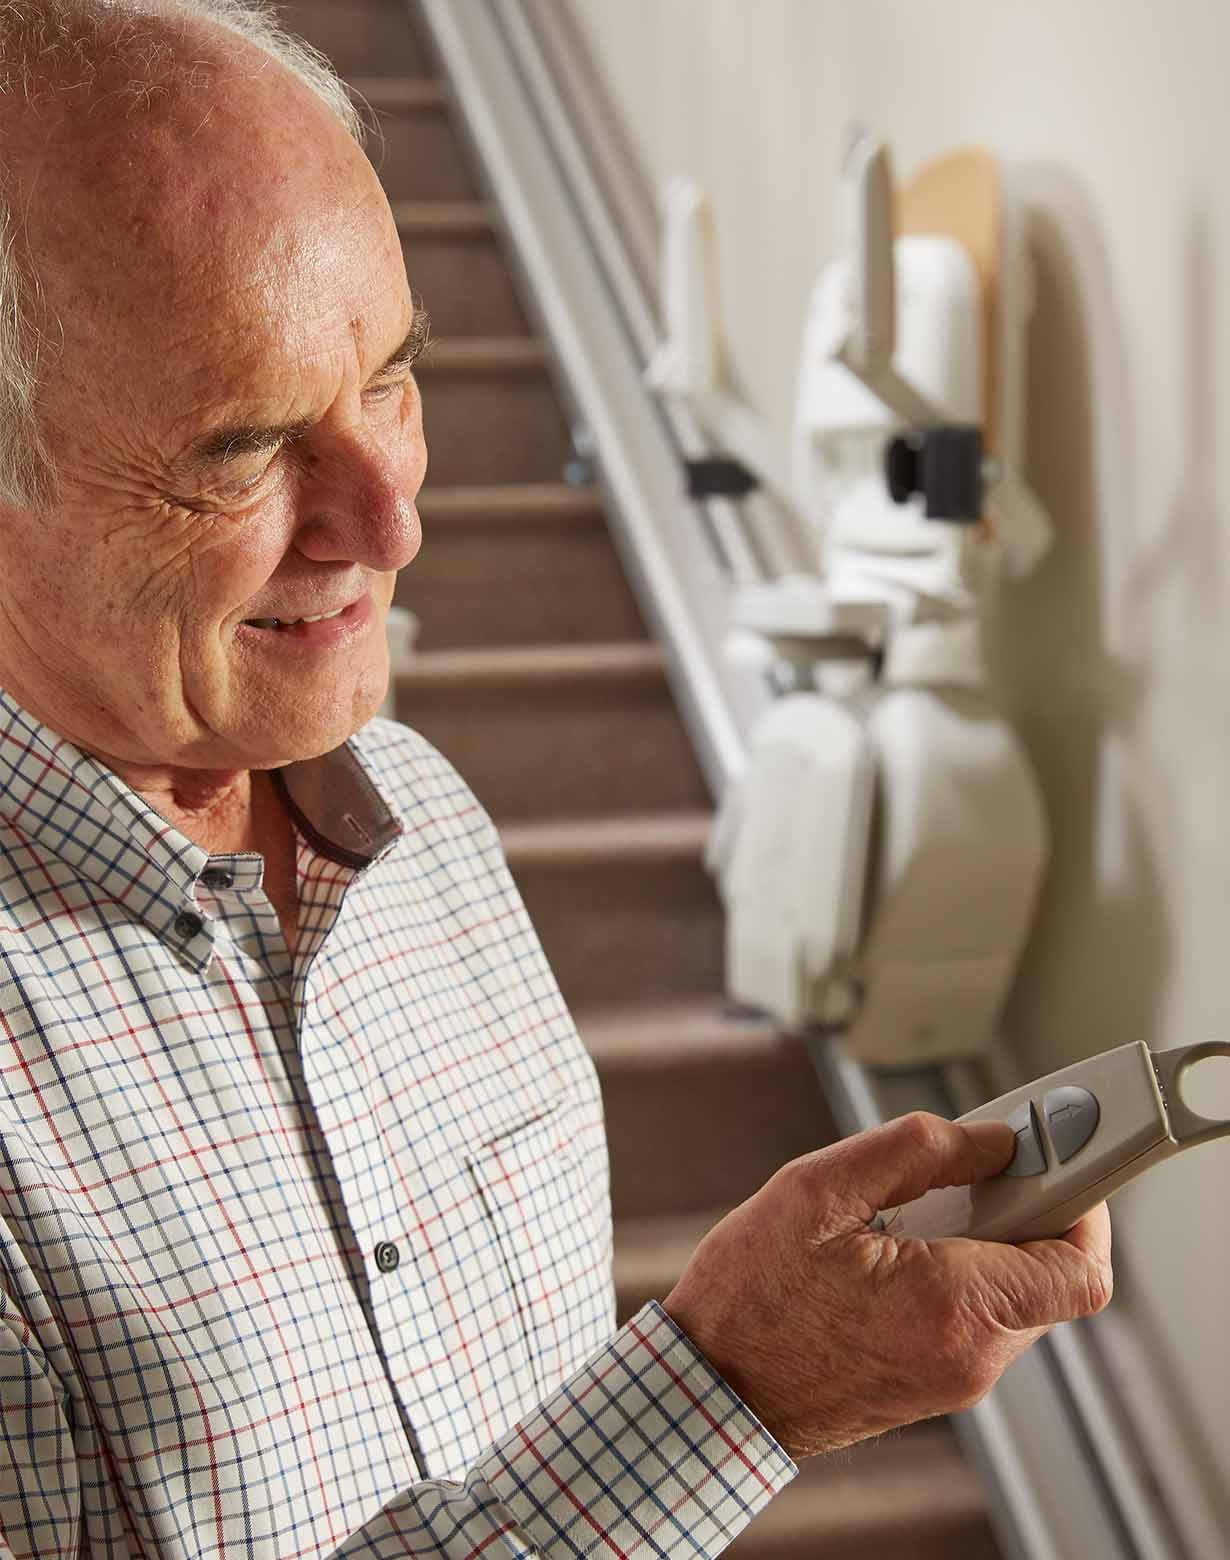 Man calling his straight stairlift down with a remote control